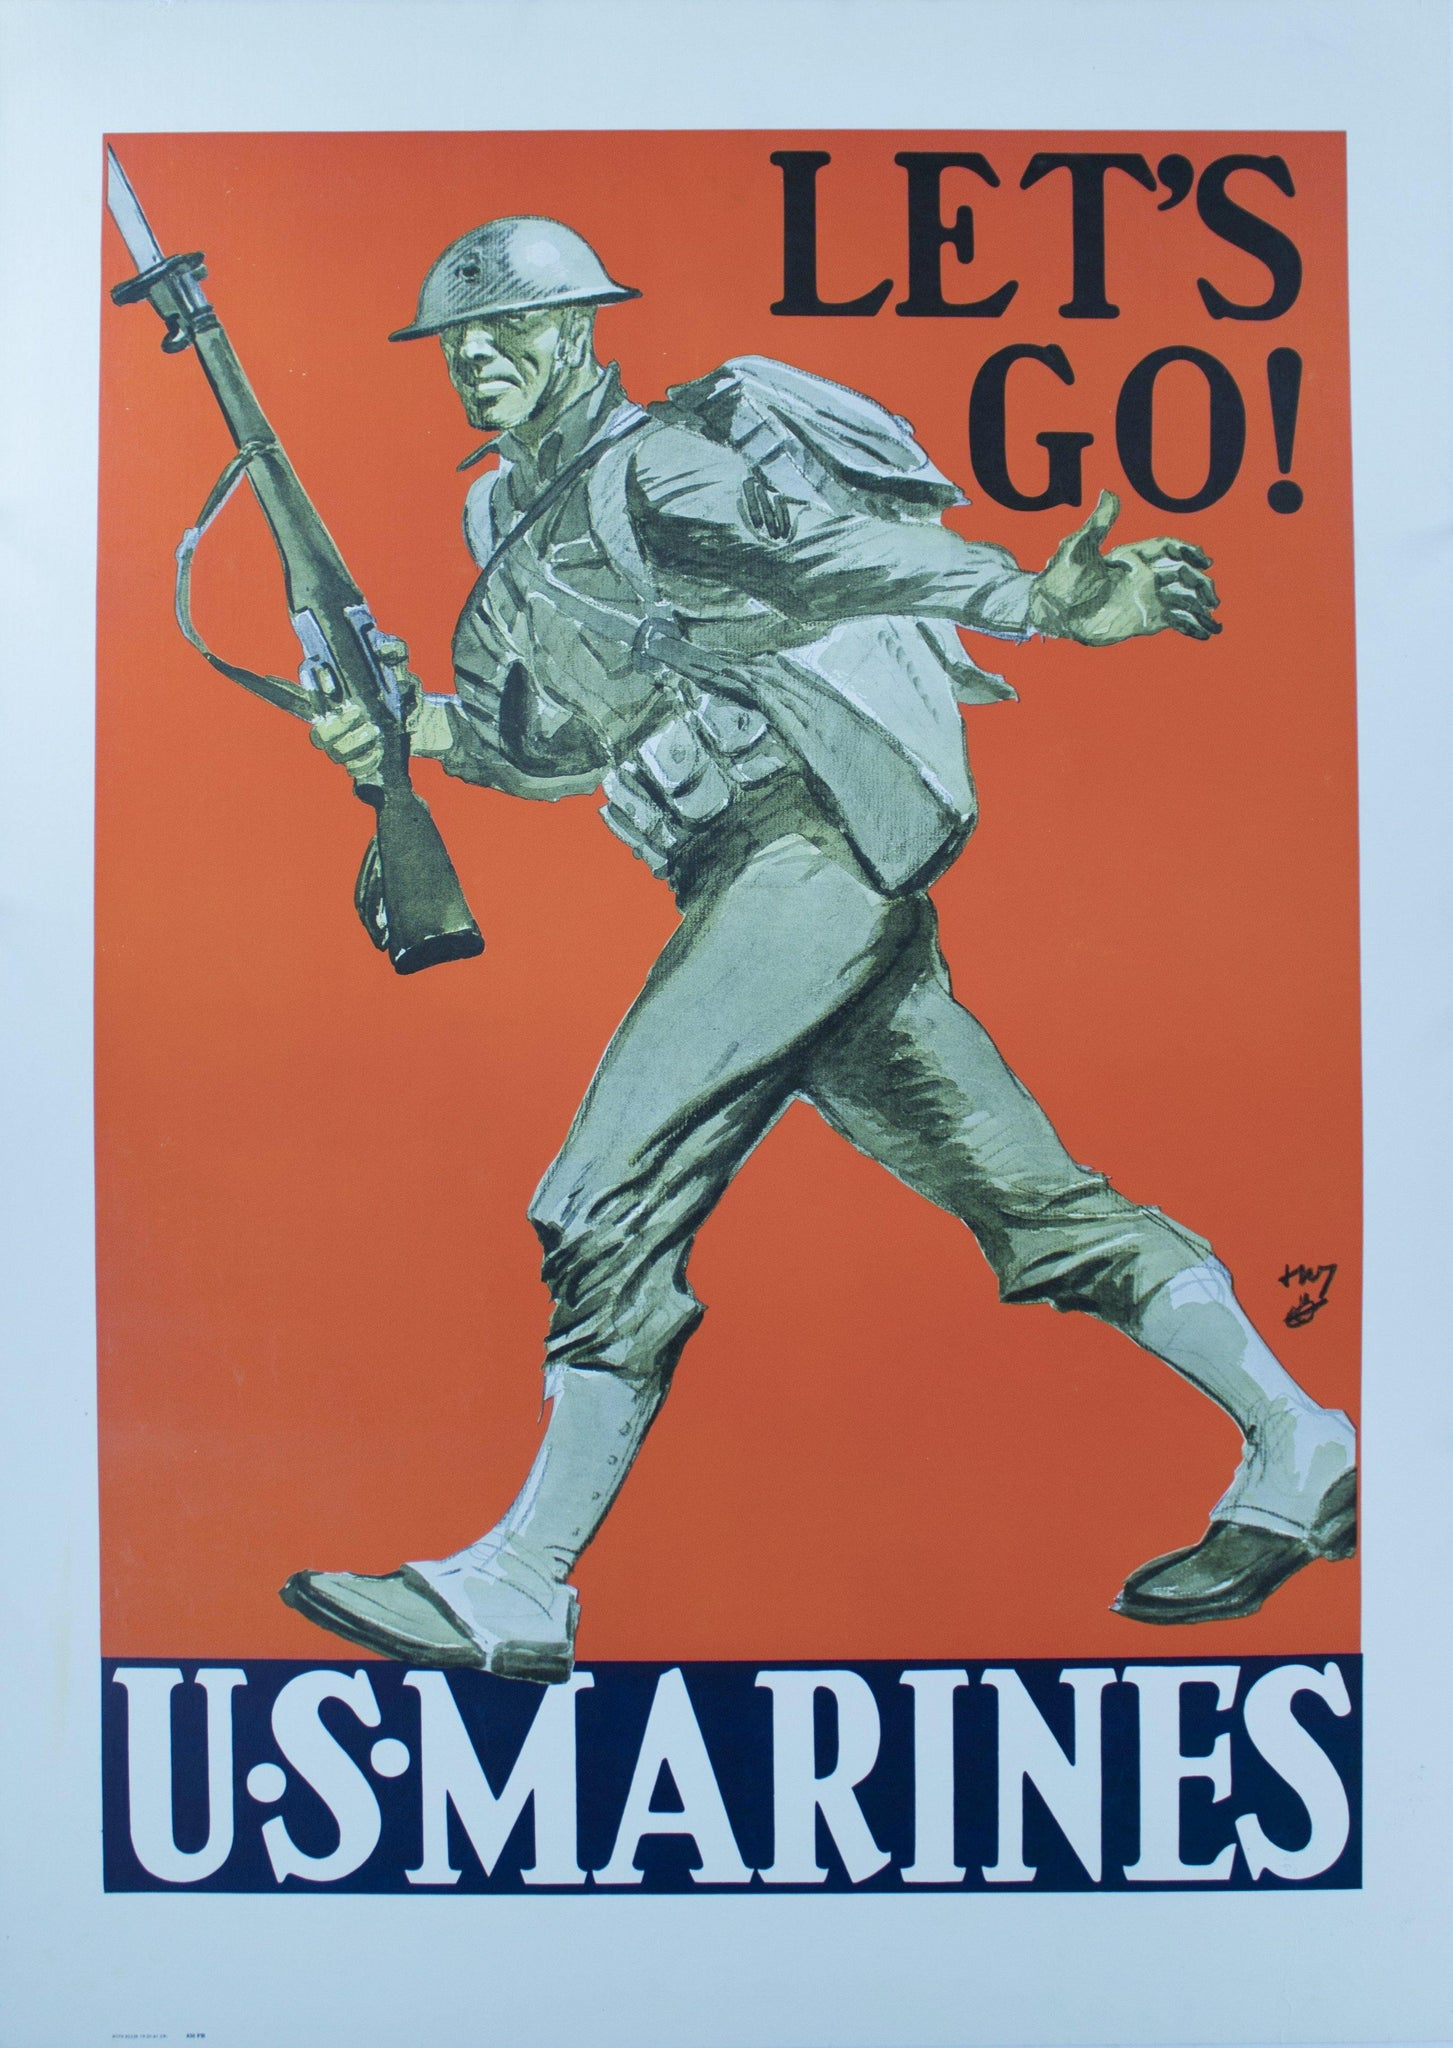 1941 Lets Go! U. S. Marines